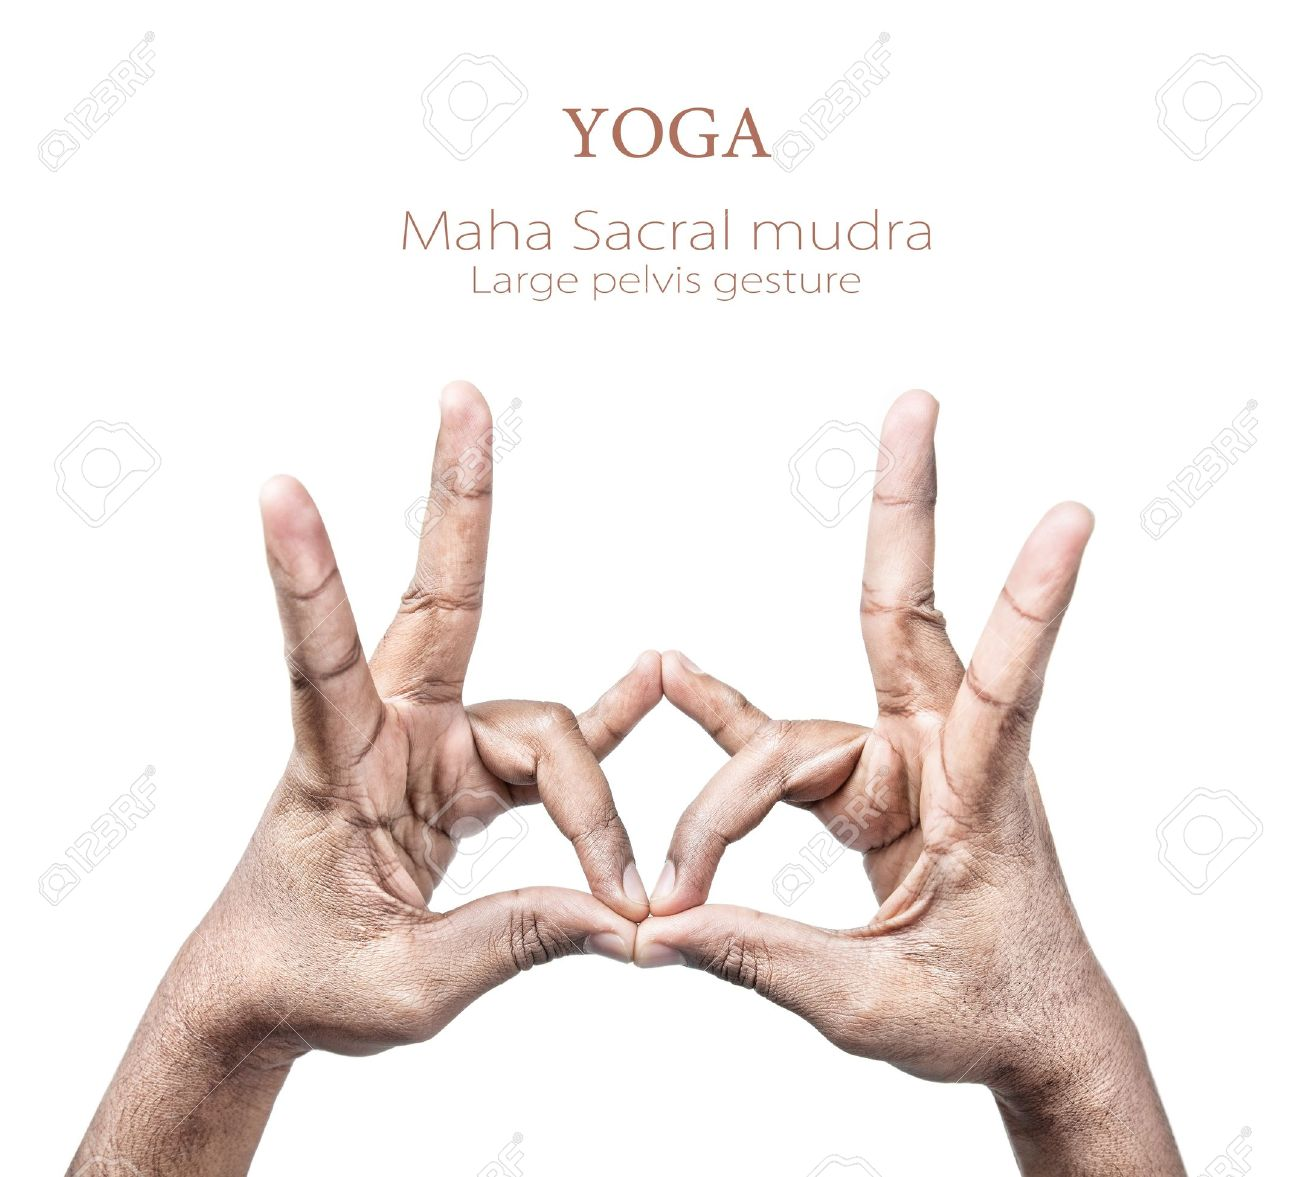 Hands in maha sacral mudra by Indian man isolated on white background. Free space for your text Stock Photo - 14725874